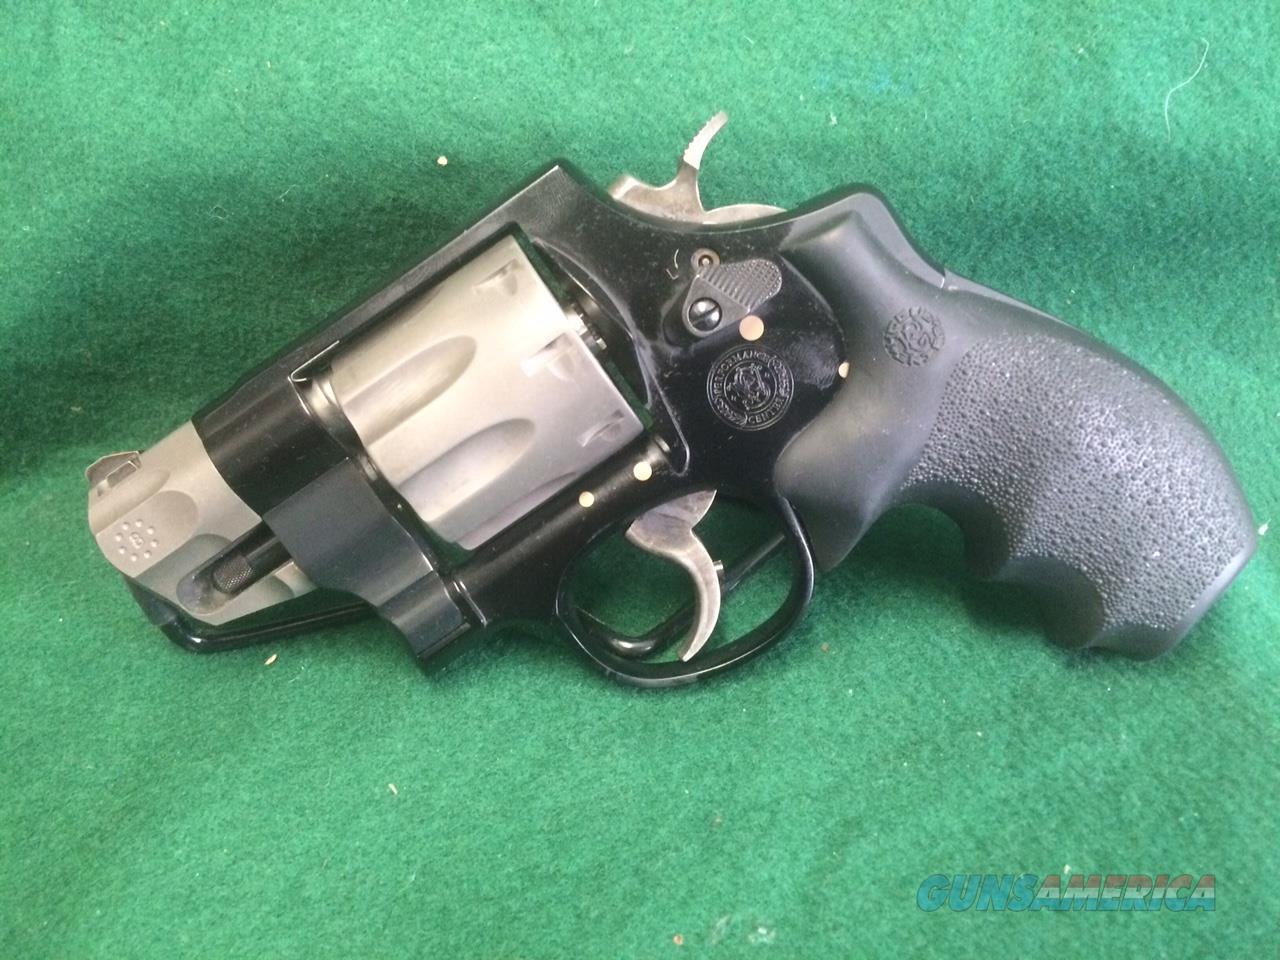 Smith & Wesson 327 Performance Center  Guns > Pistols > Smith & Wesson Revolvers > Performance Center